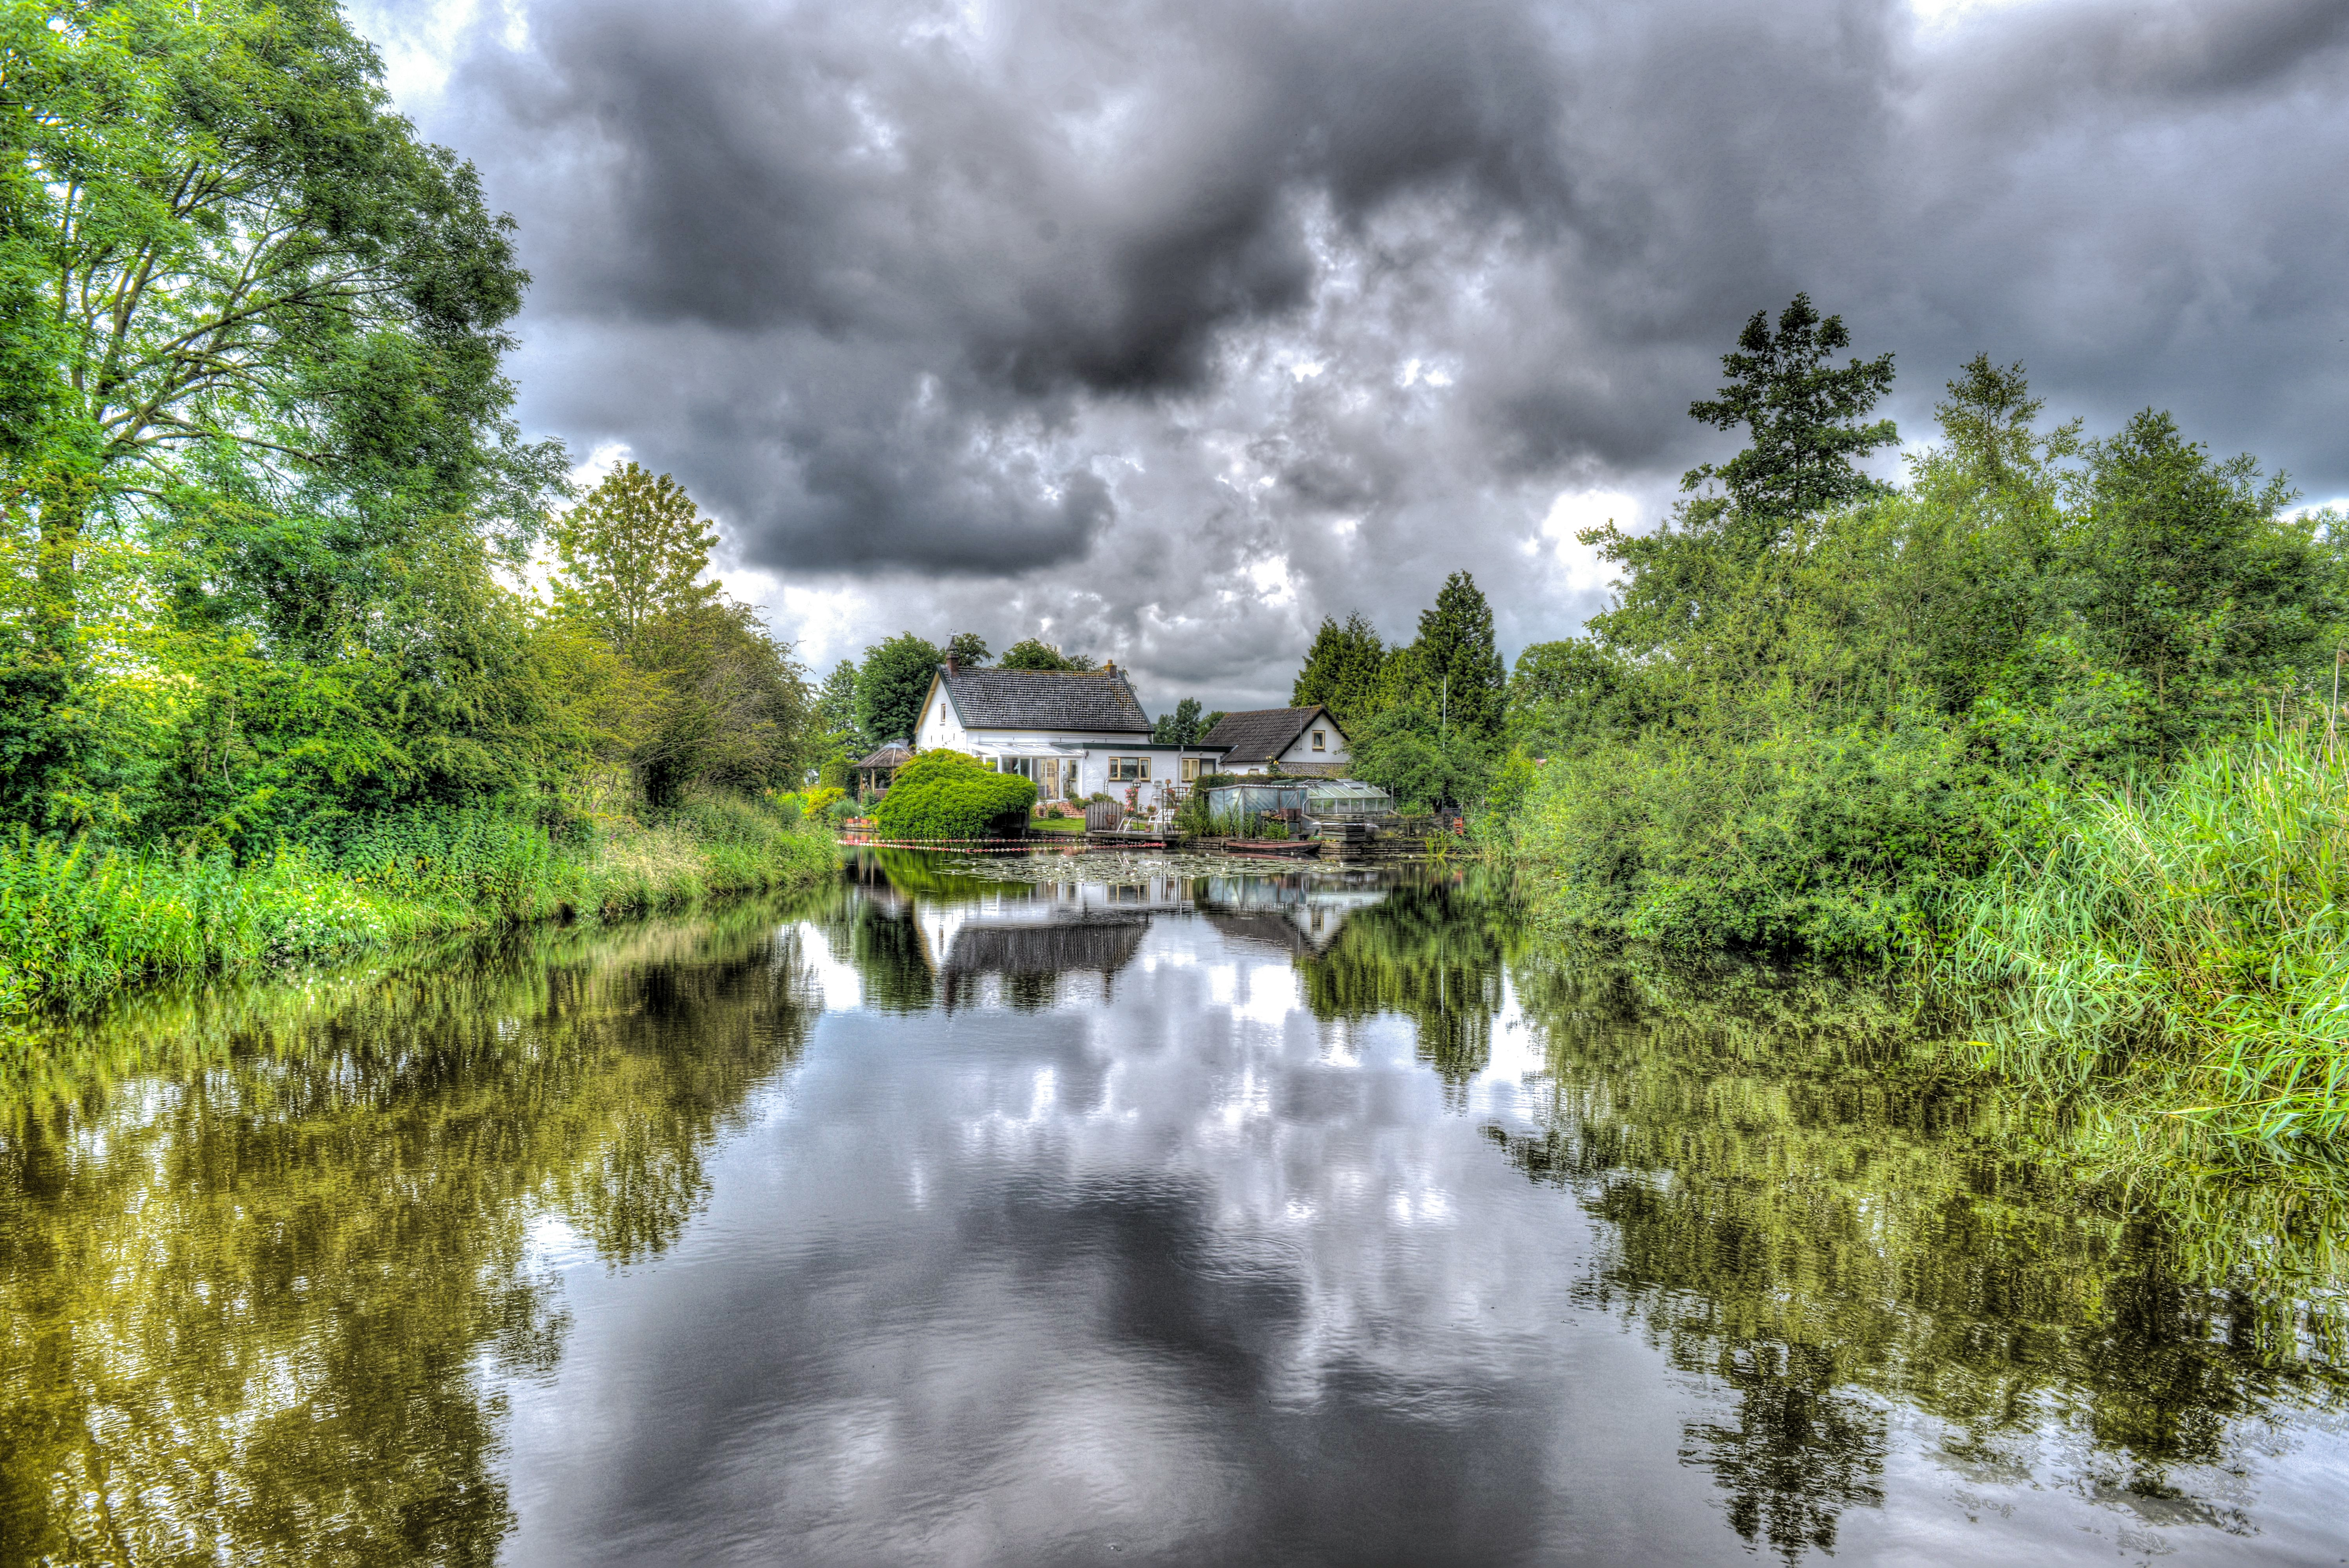 House on the Middle of the Lake, Clouds, Rural, White house, Weather, HQ Photo